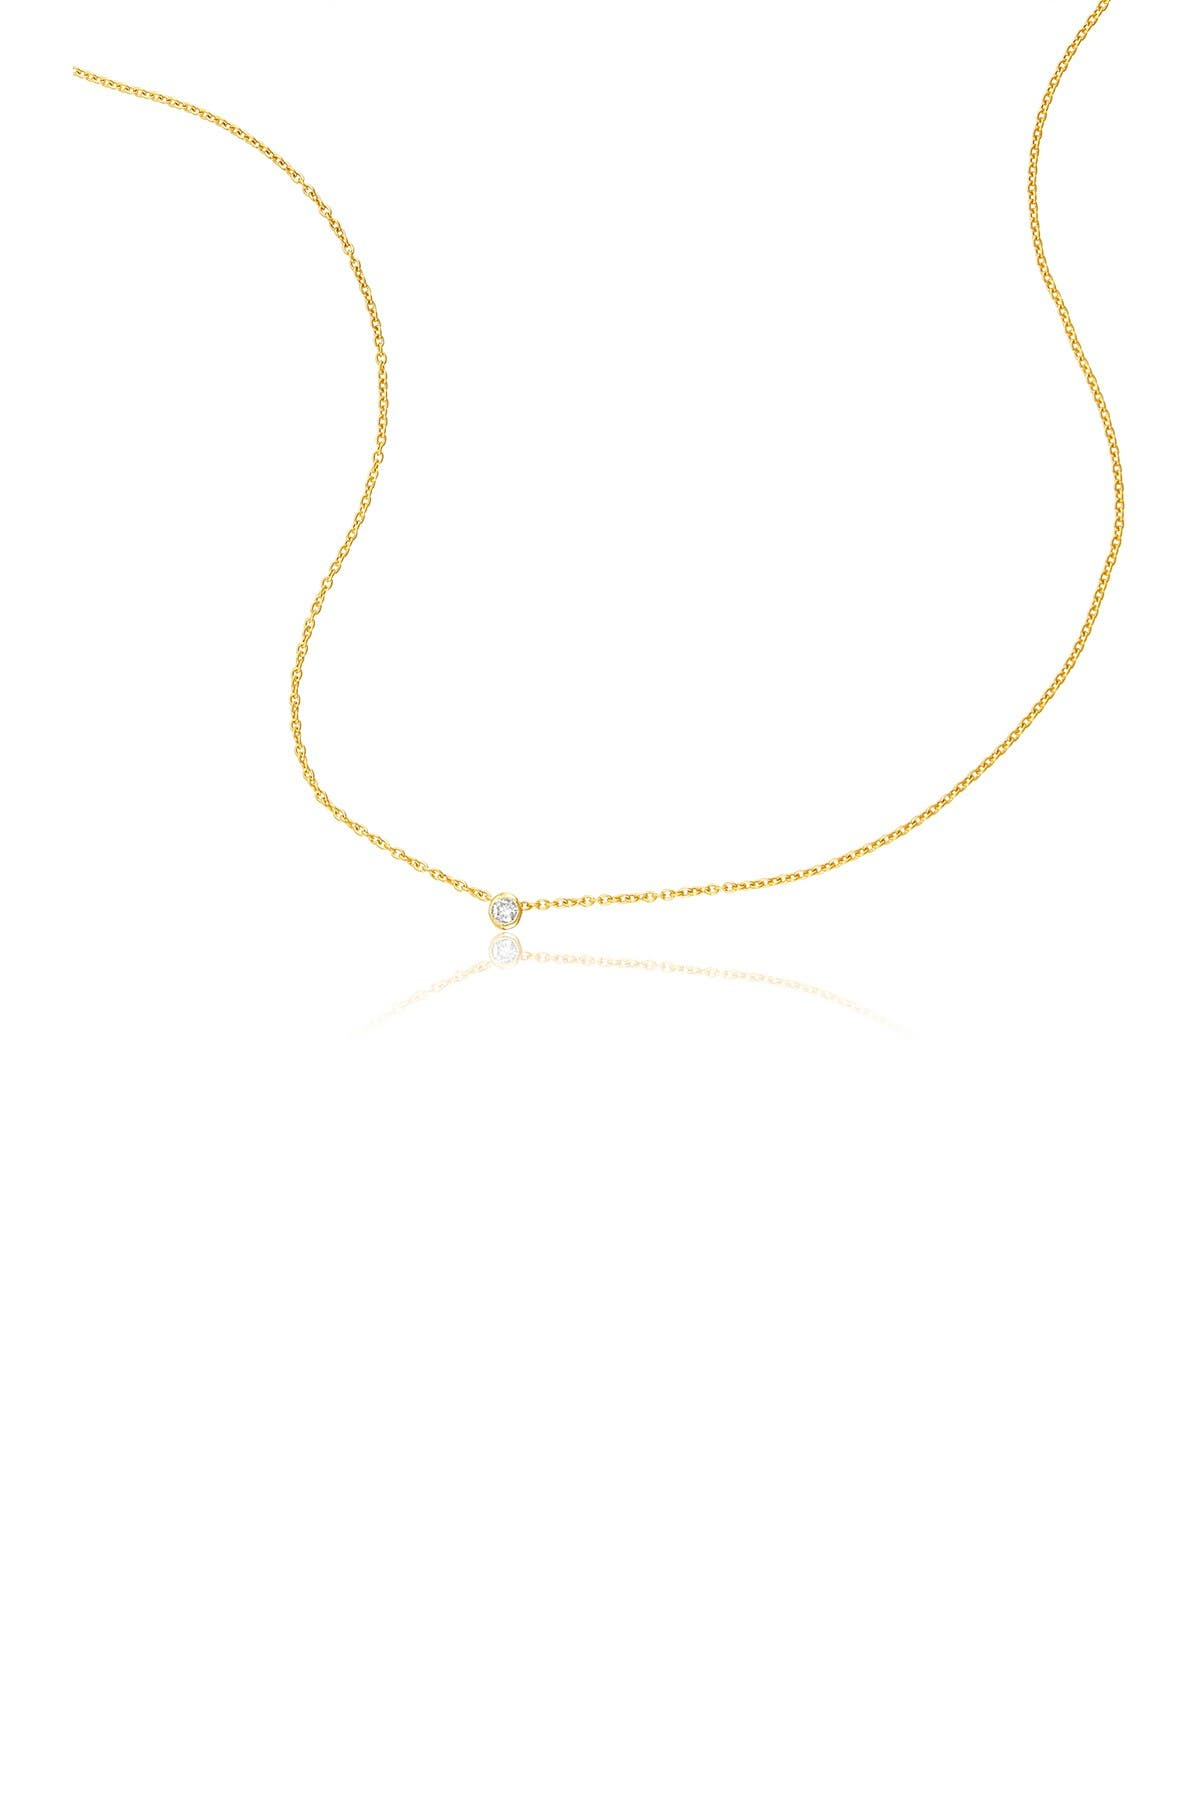 Details about  /14K Yellow Gold Floating Duck Charm Pendant For Necklace or Chain